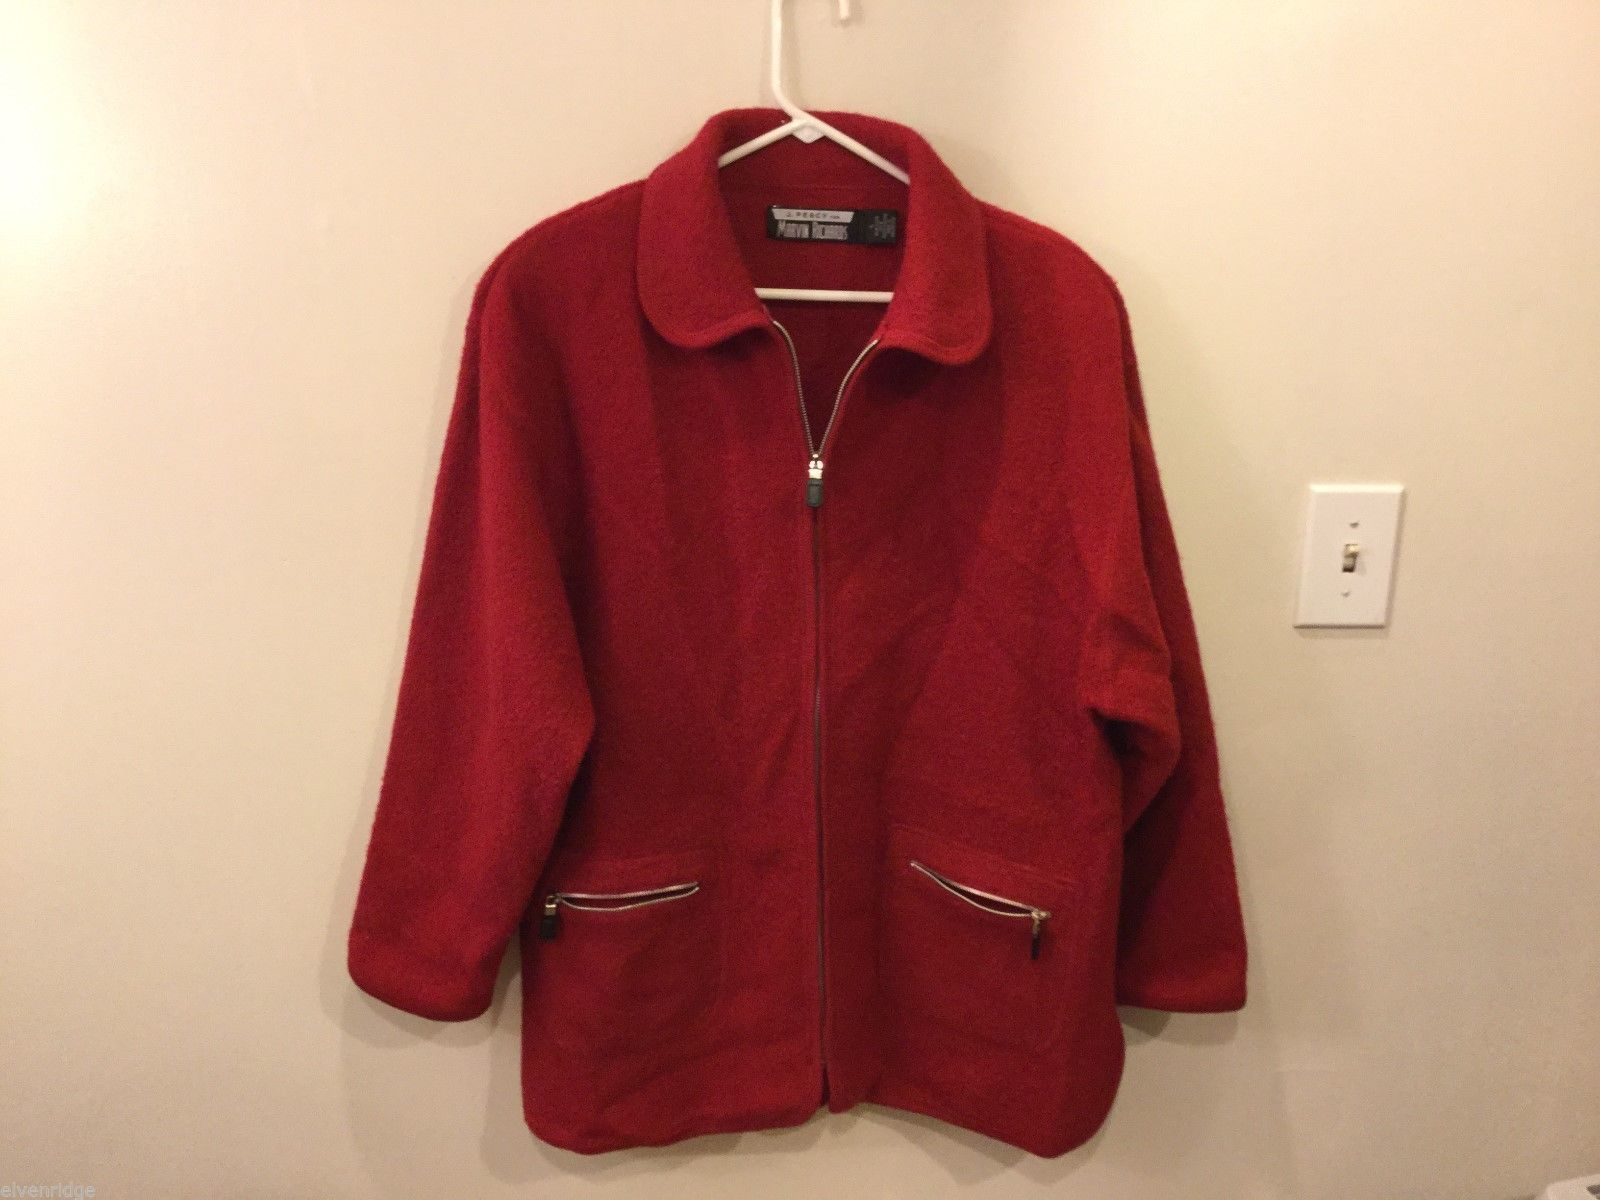 Unisex J. Percy Red Zip Up Jacket, Size Large